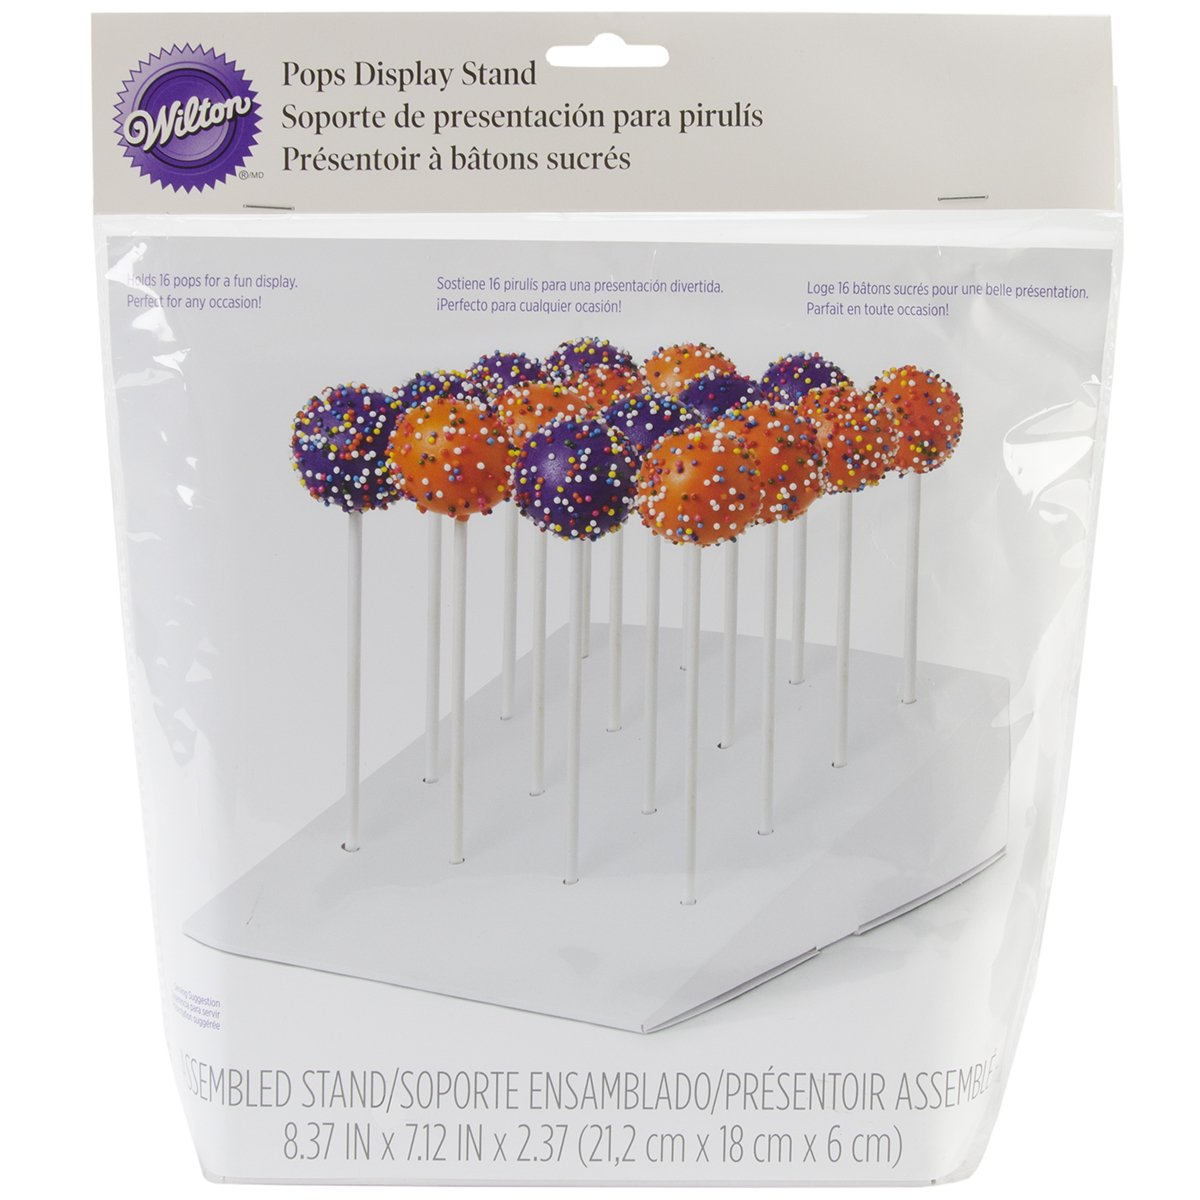 Cake Pops Display Stand, White, 6cm x 20.3cm (2.37 x 8.37in), Holds 16 Wilton 415-2264